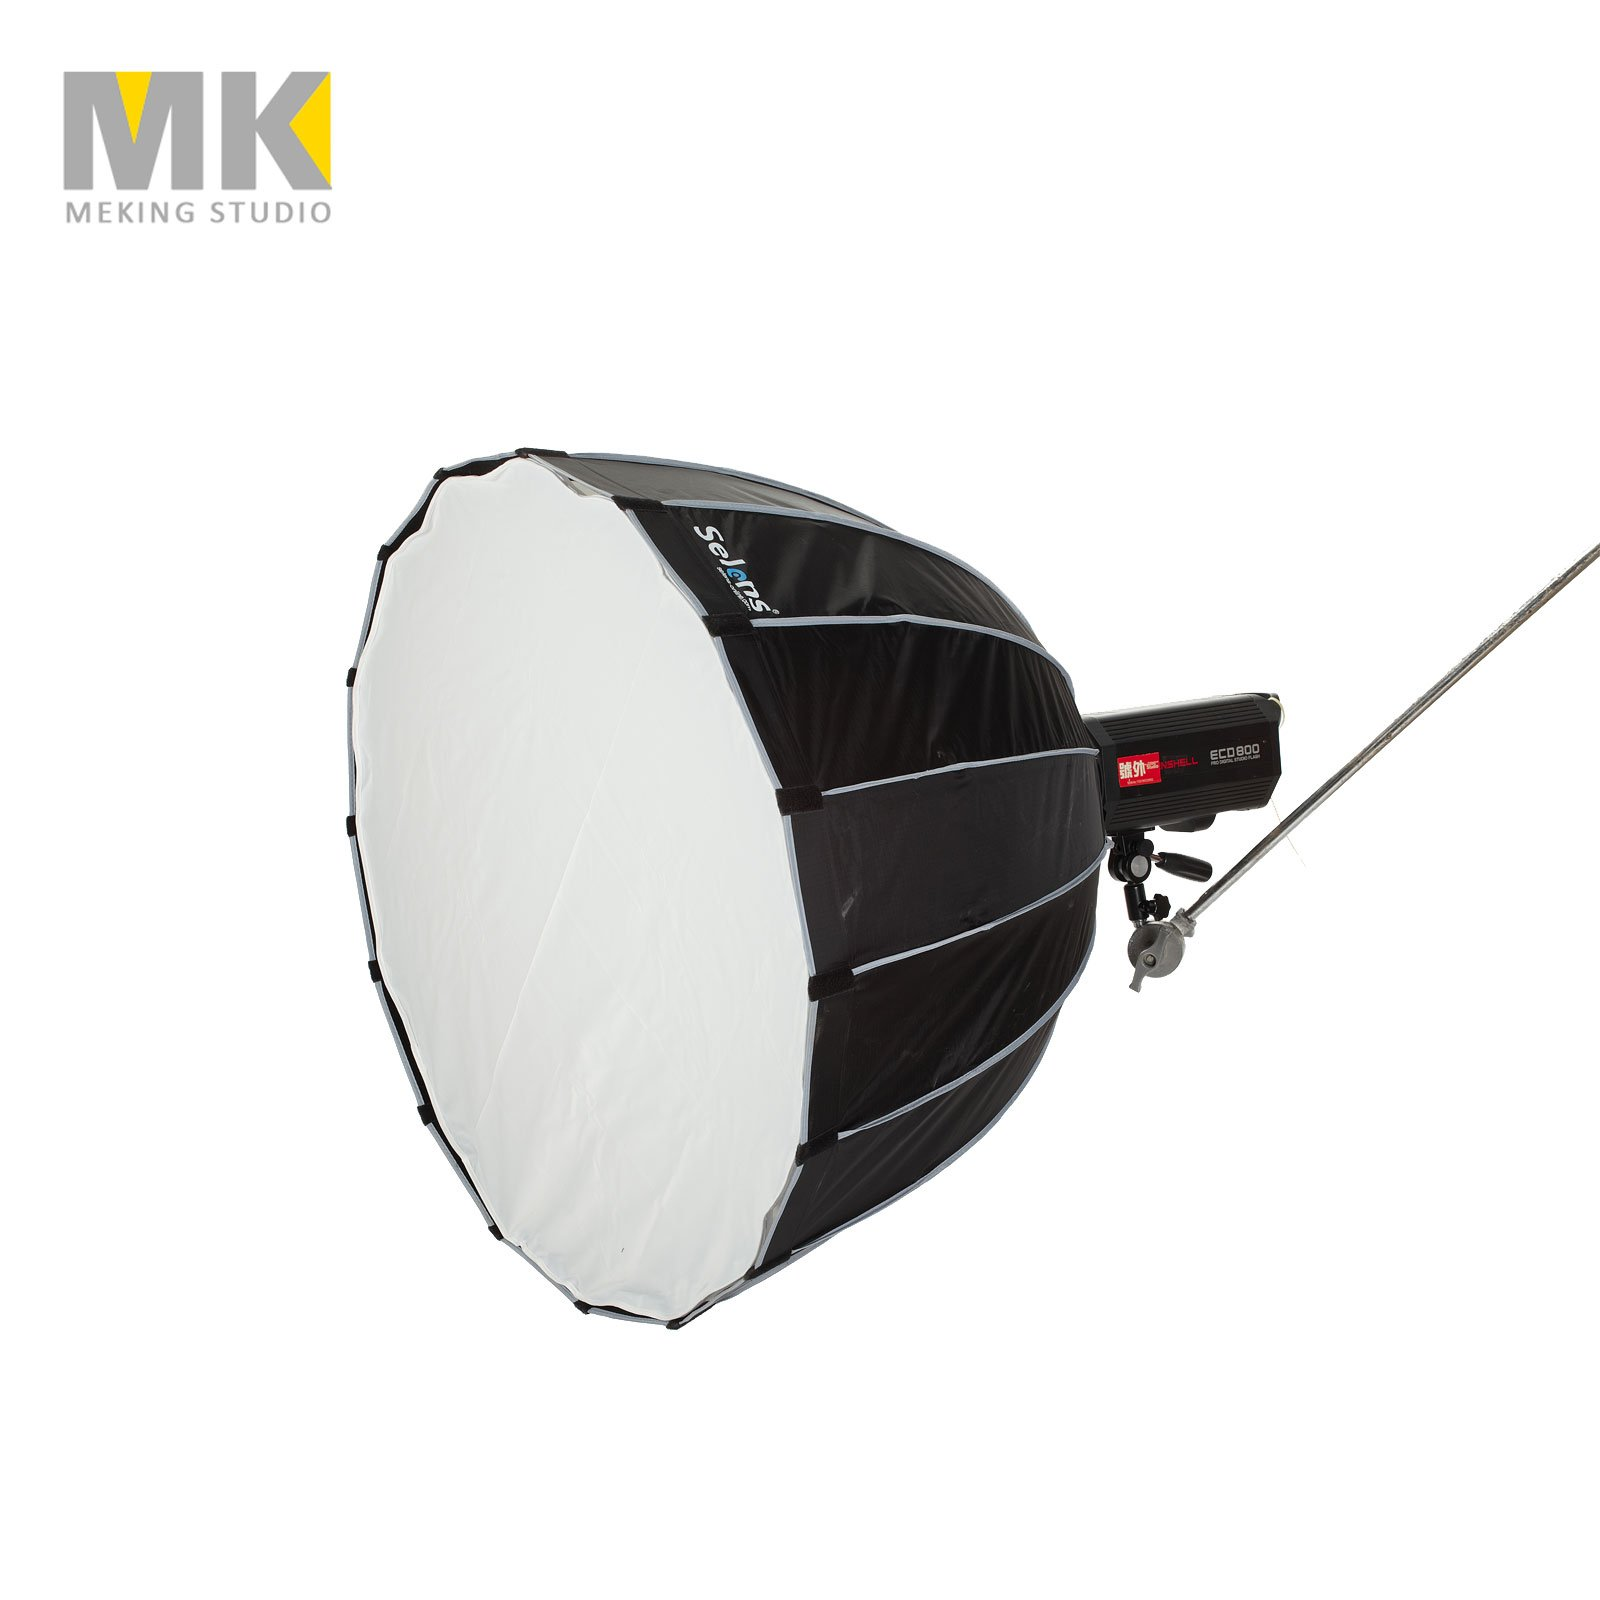 Selens Parabolic Softbox 75 inches / 190 Centimeters, Hexadecagon Deep Portable and Quick Folding Softbox Diffuser with Bowen Mounts for Studio Light and Speedlite Flash by Selens (Image #2)